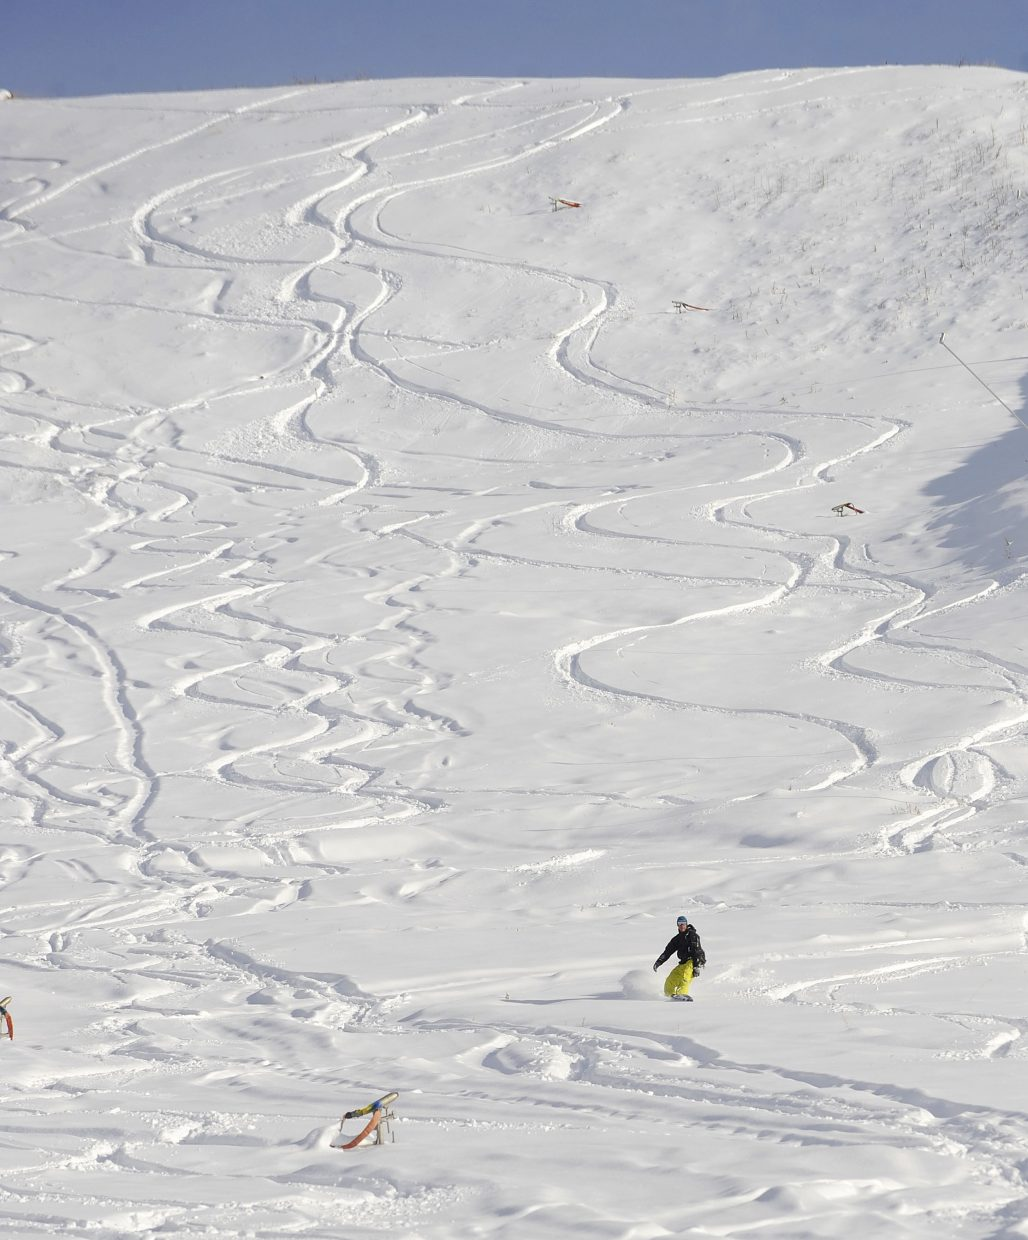 Steamboat Springs resident Kenny Loose rides down the See Me trail at Steamboat Ski Area on Wednesday afternoon.